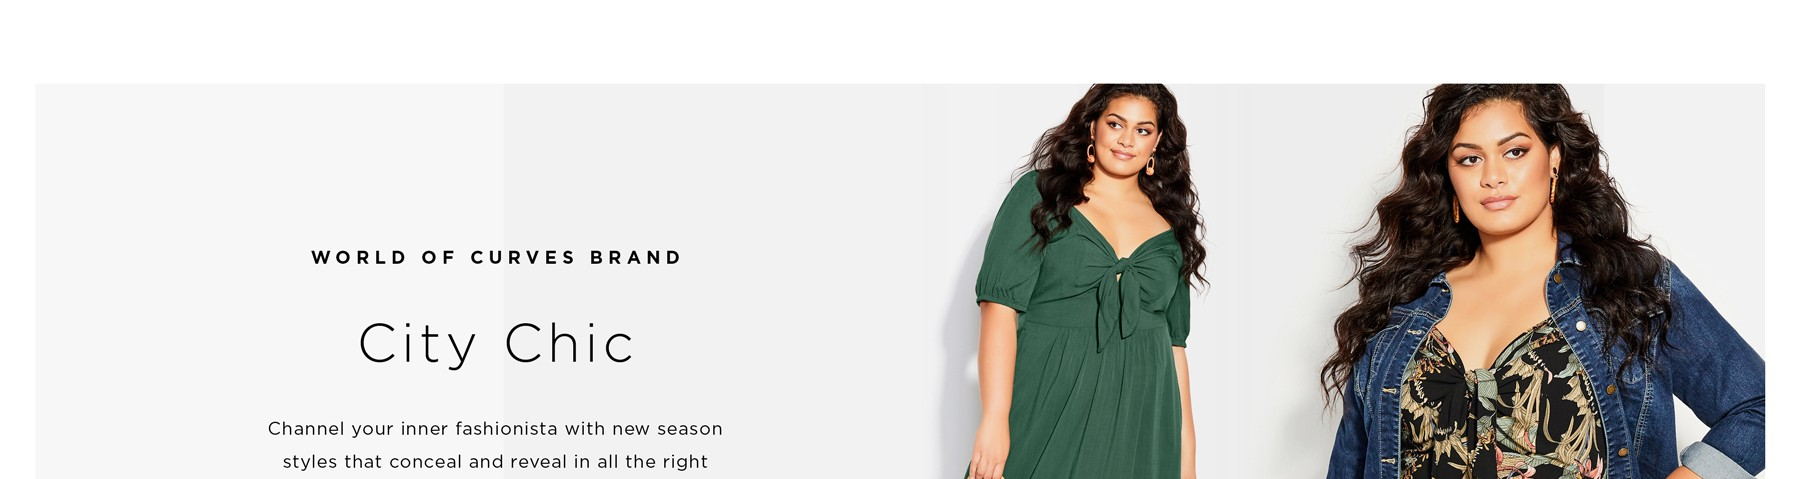 World of Curves Brand - City Chic